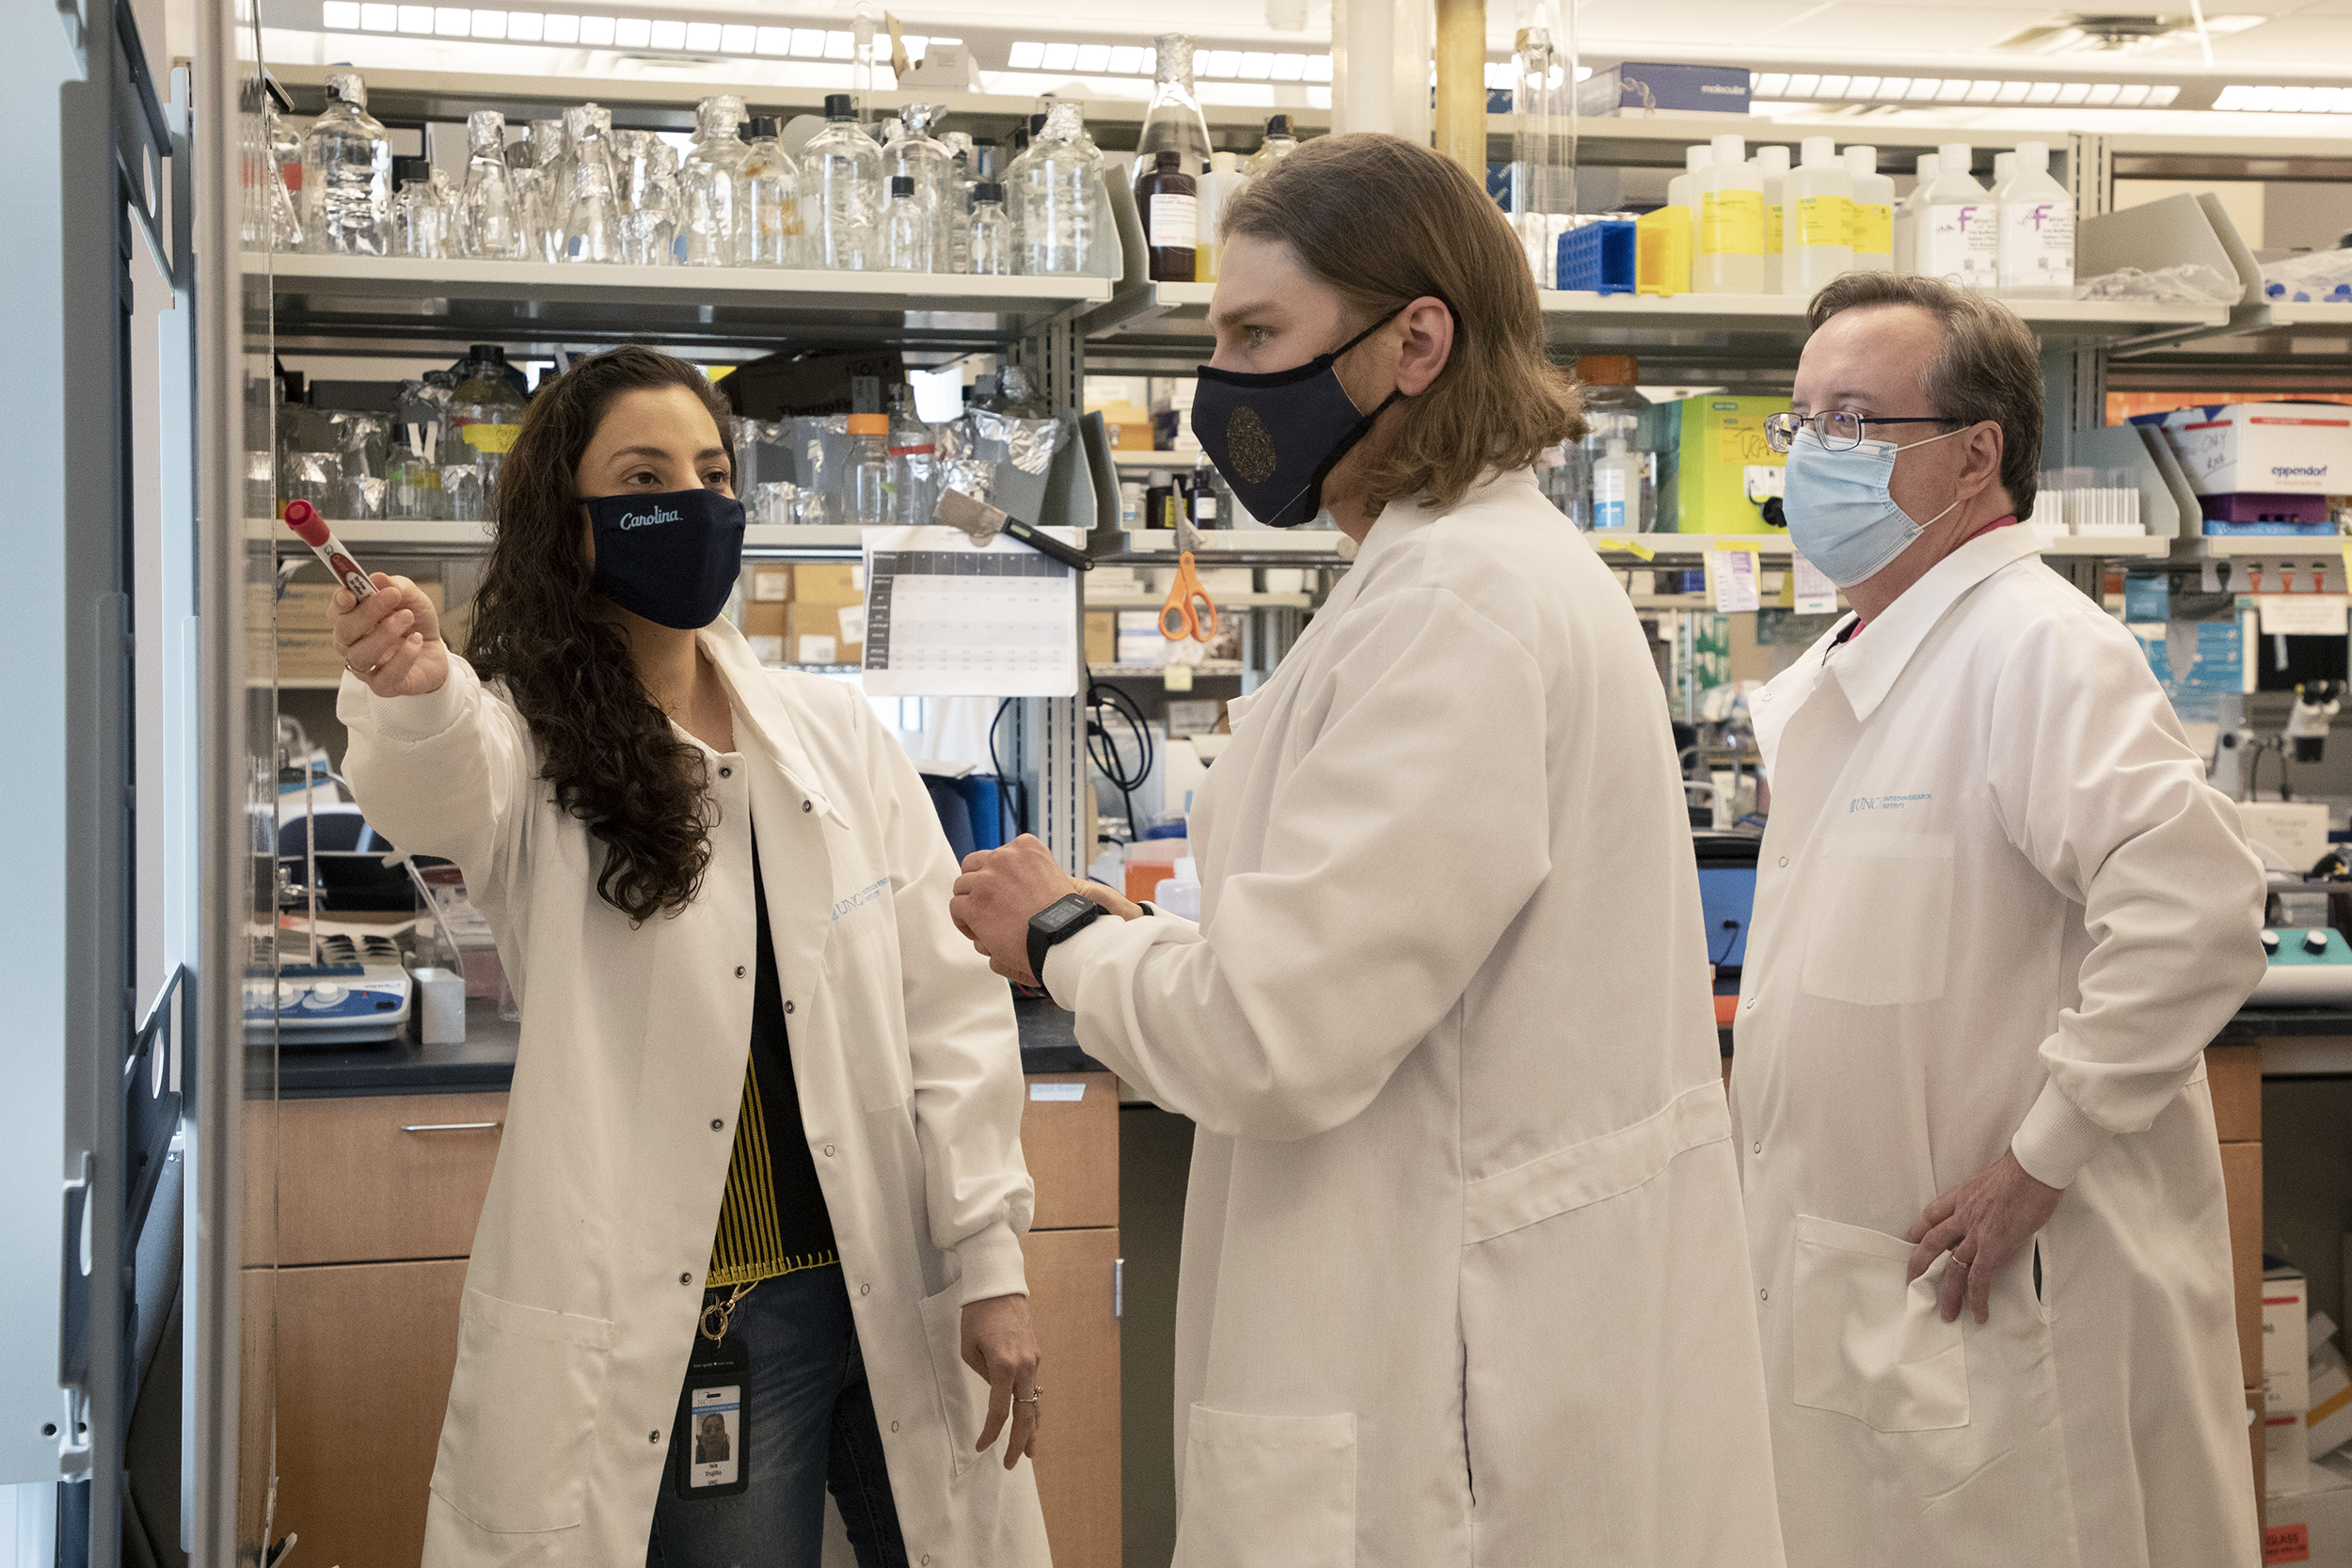 Isis Trujillo, Evan Paules, and Walter Friday in the lab